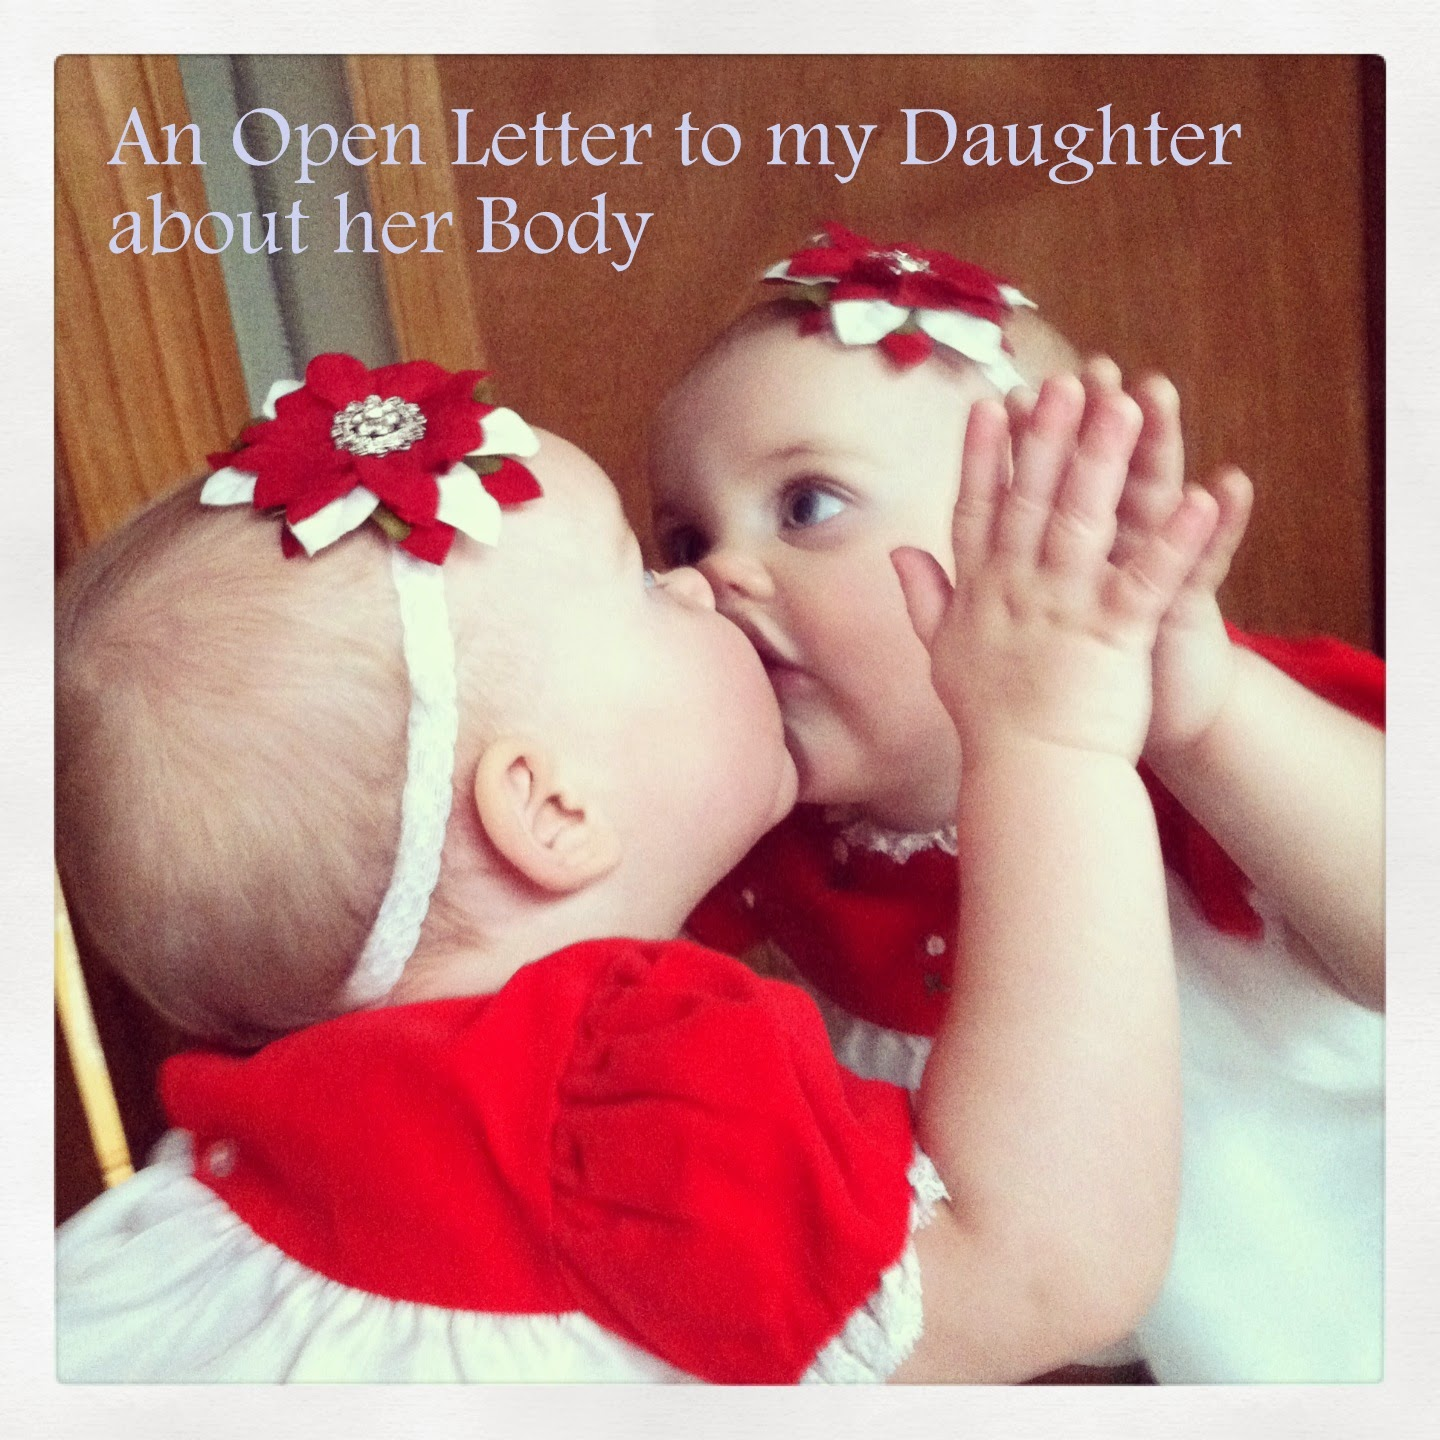 An Open Letter to my Daughter about her Body